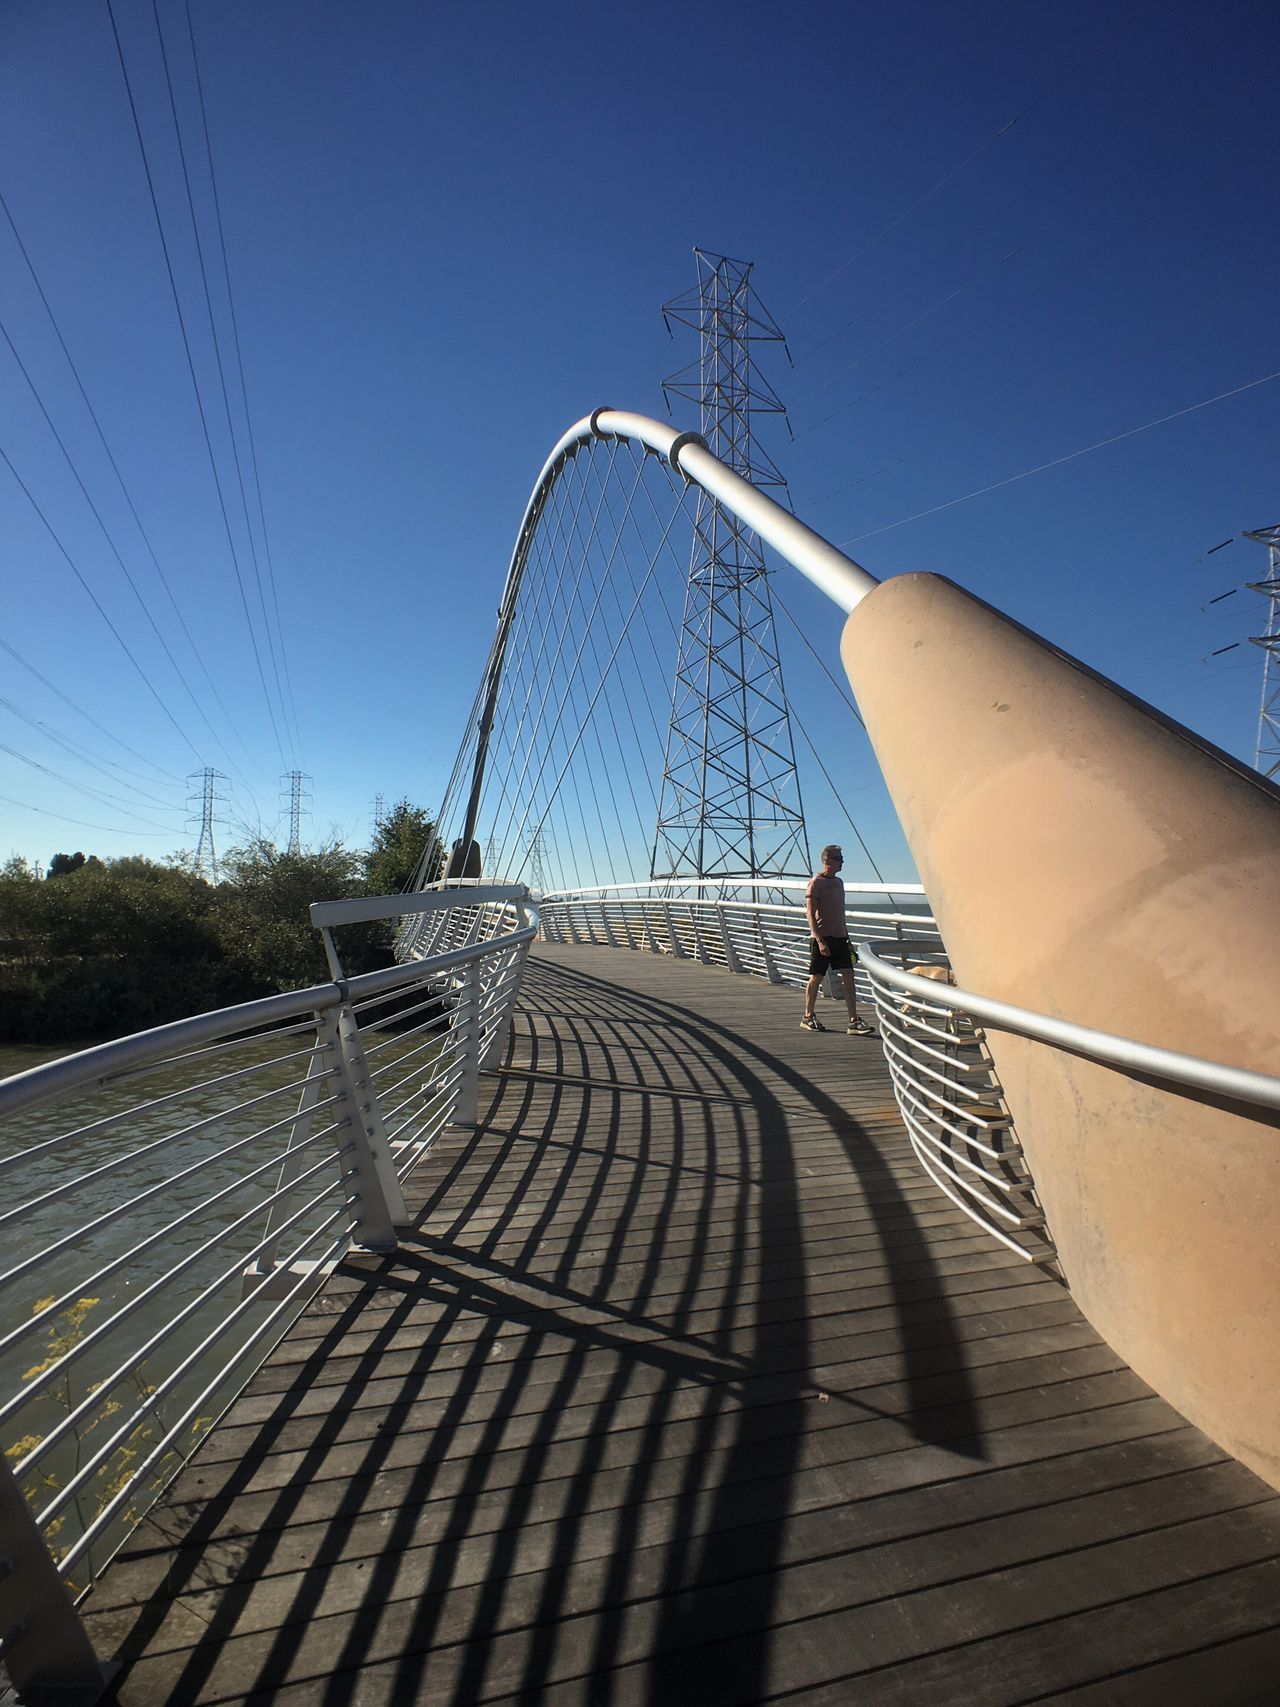 Hidden Gems  Bridge Jogging Shadows Electricity Tower Blue Sky